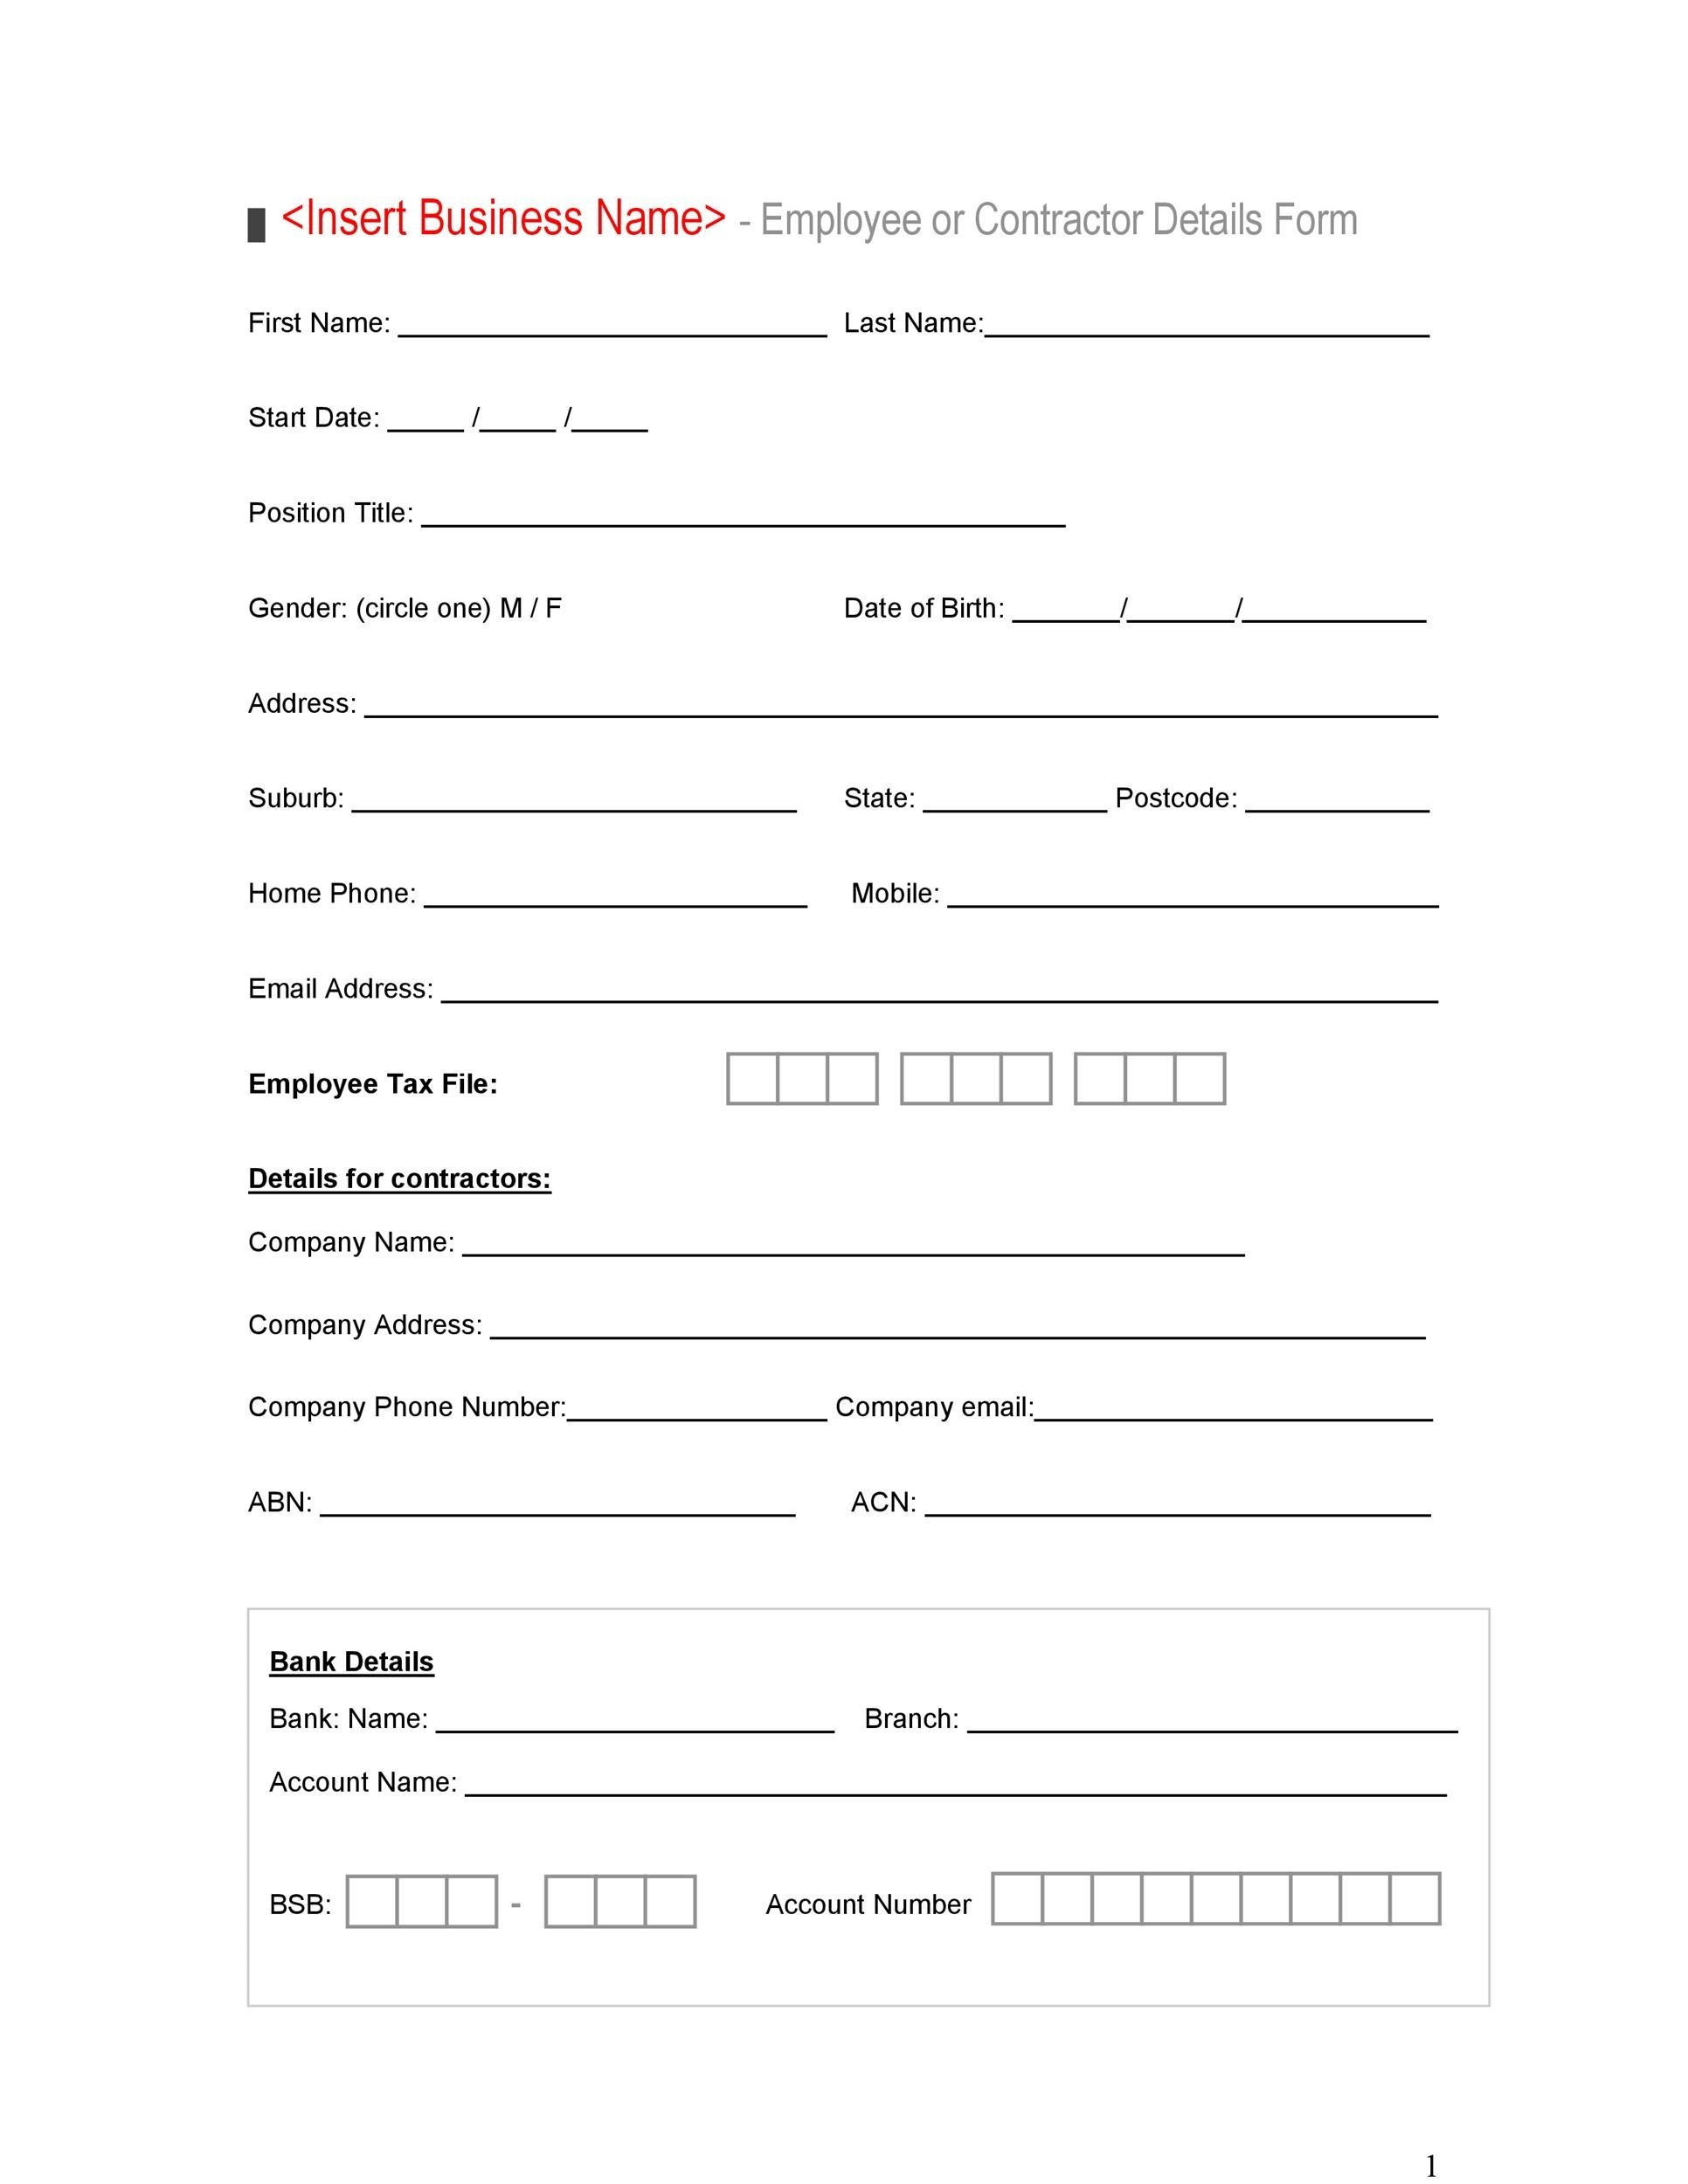 Employee Details Form Sample Word Invitation Template